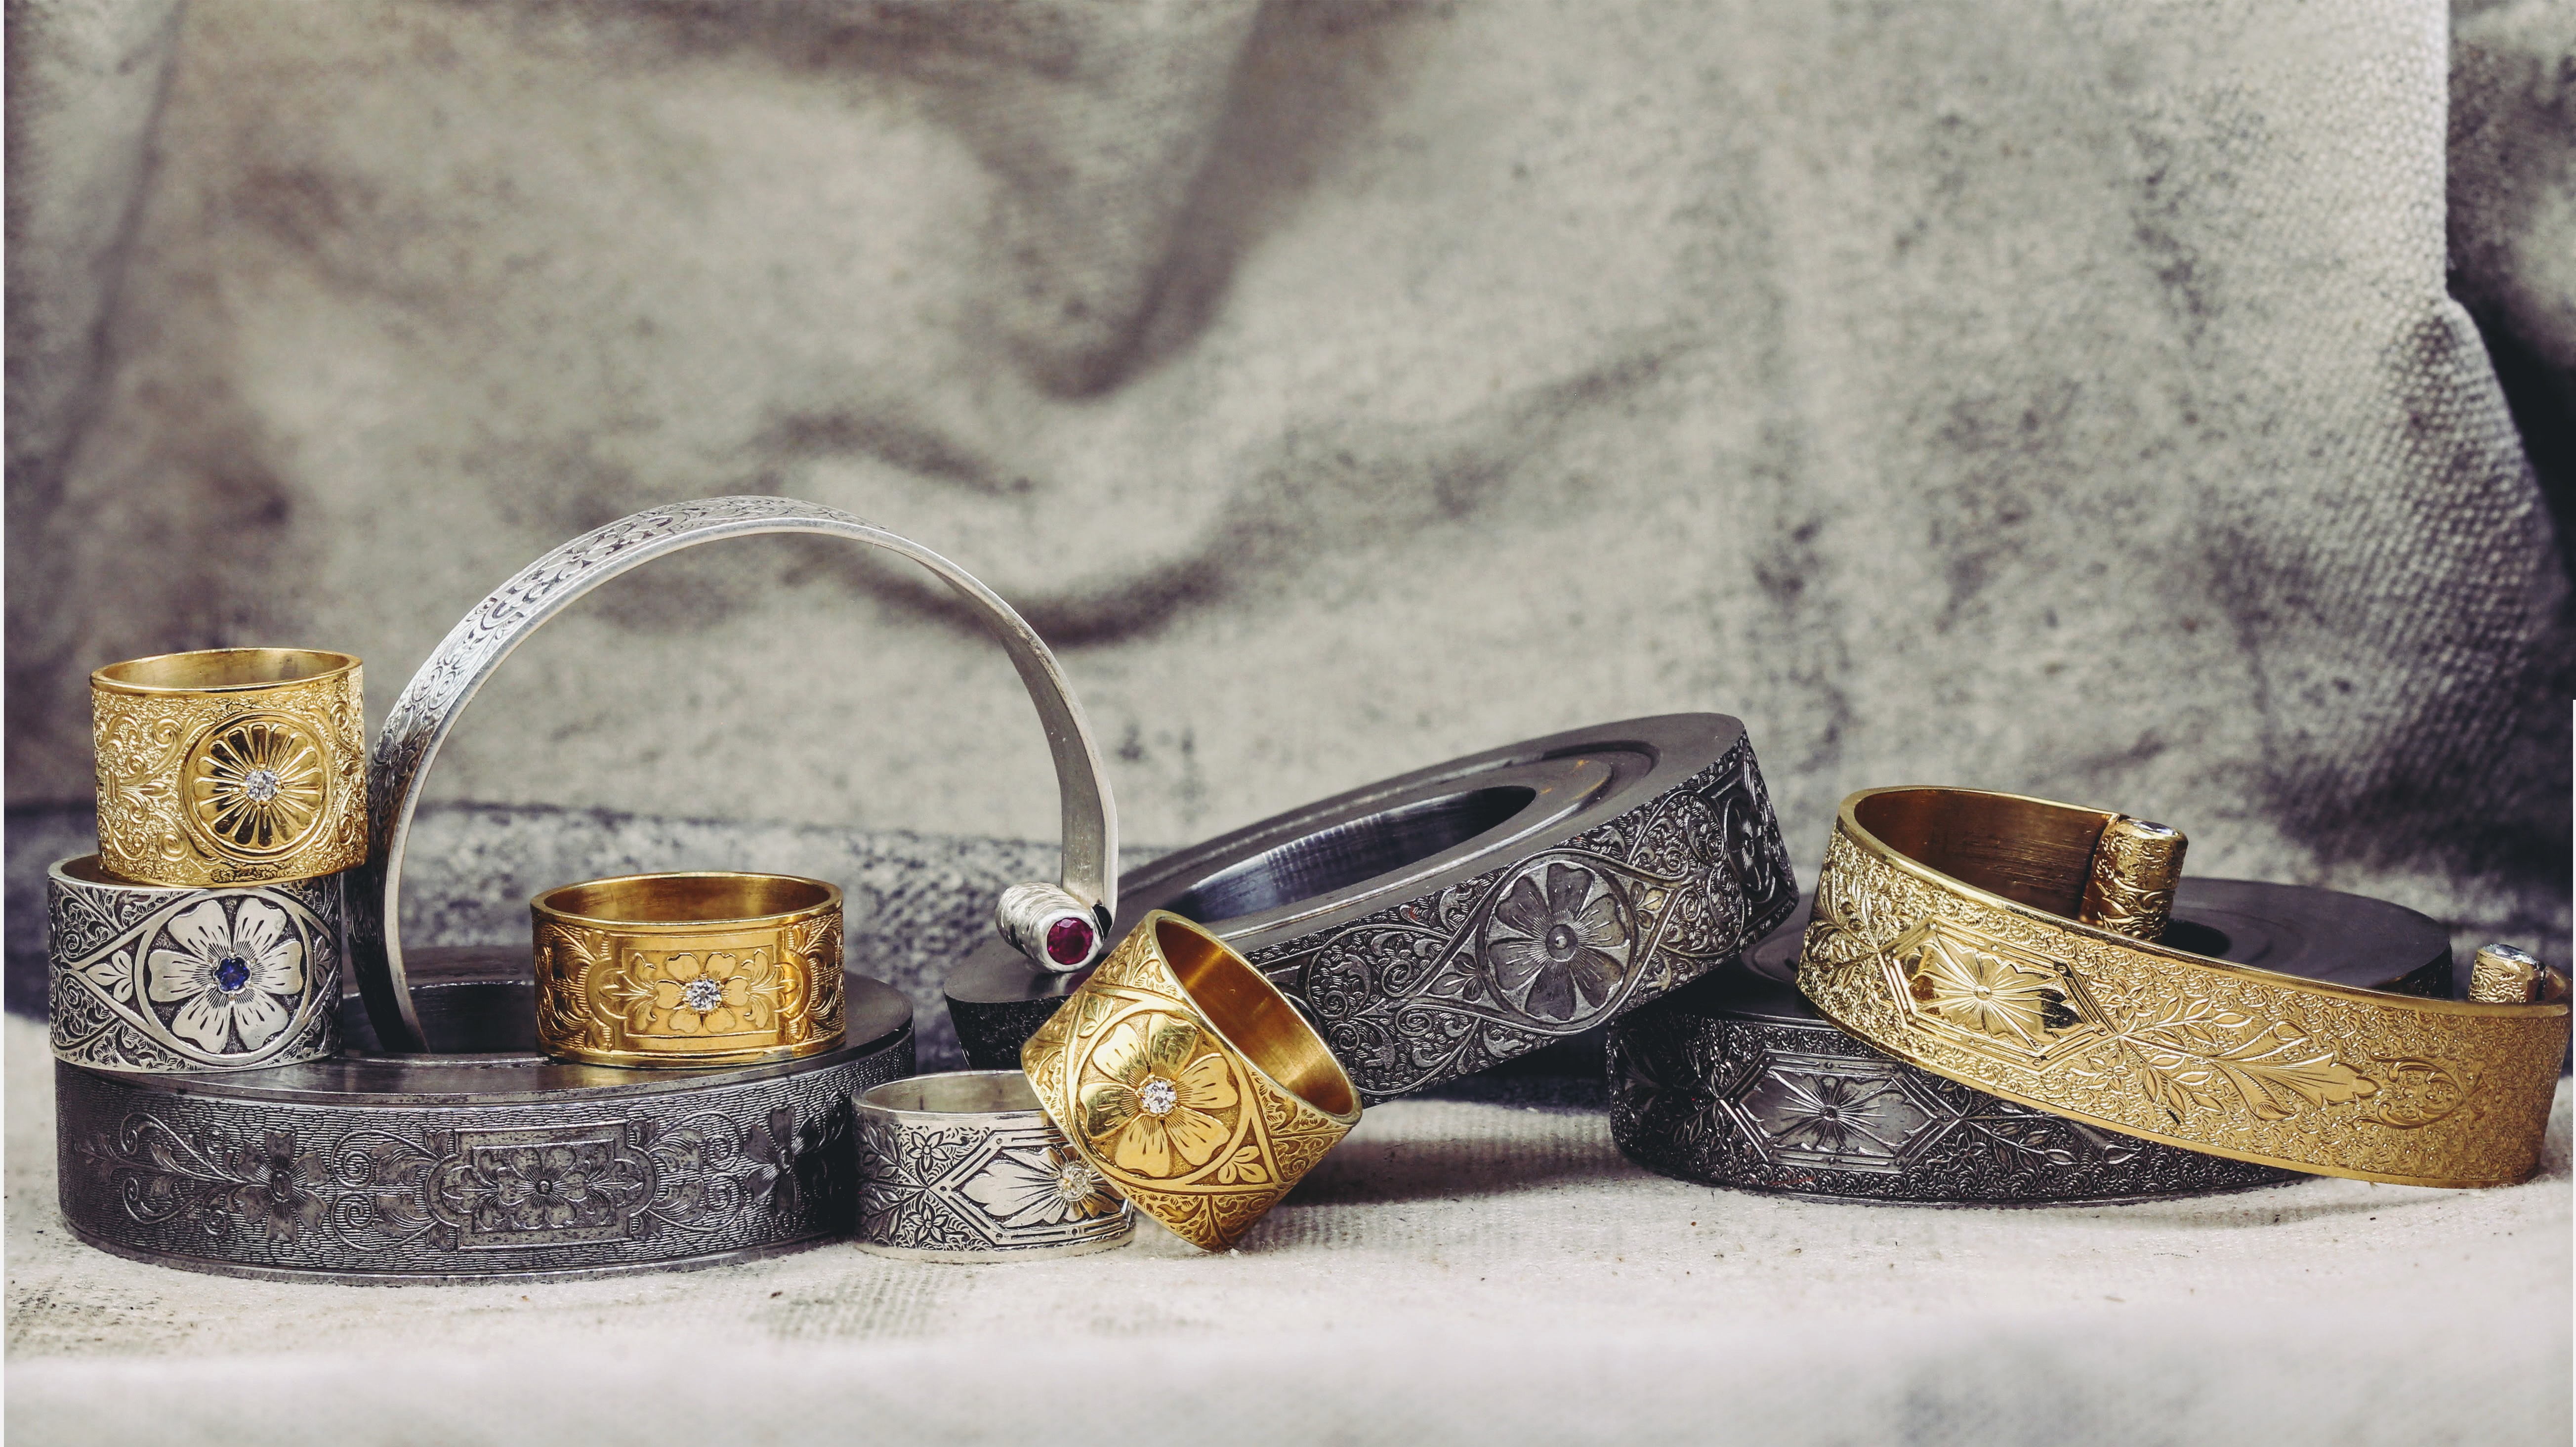 Antique-style jewelry, created with traditional molds and techniques, captures a sense of history. (Courtesy Hugo Kohl)